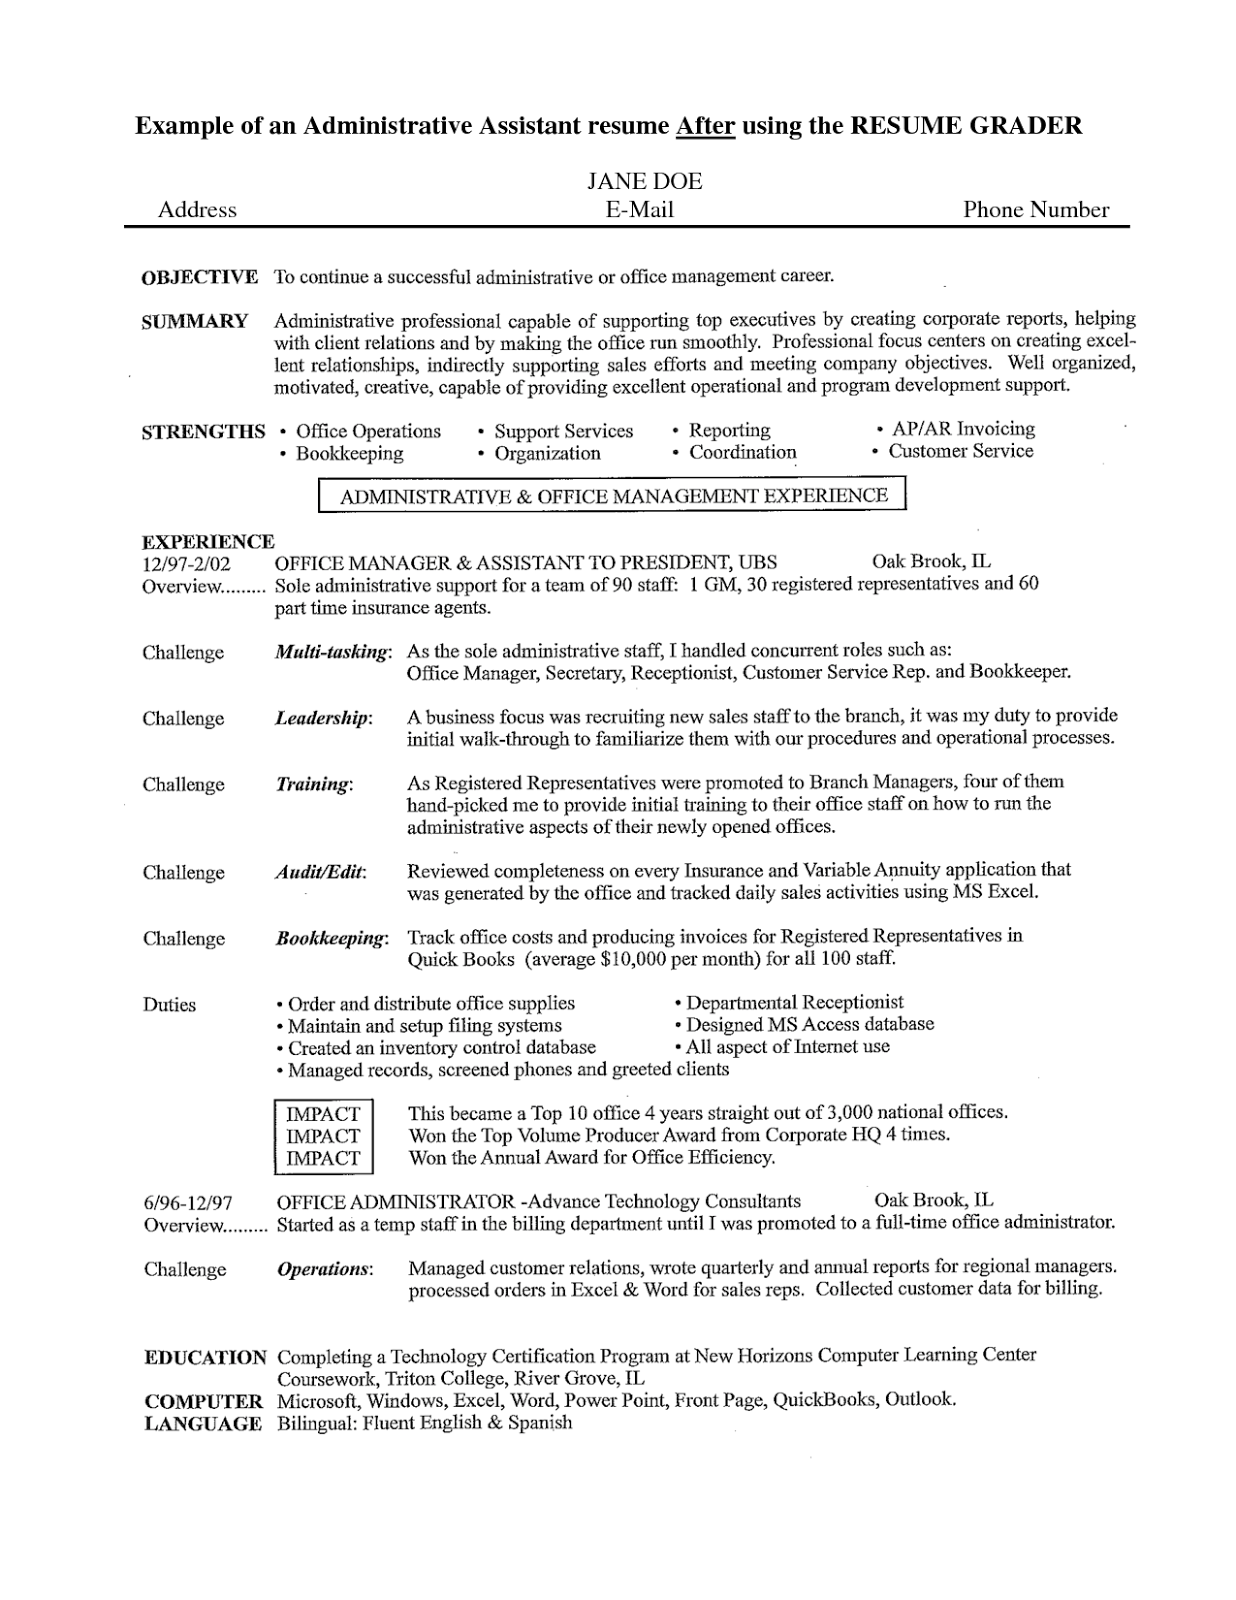 Best Administrative Resume Sample Objective On Resume For Administrative Assistant